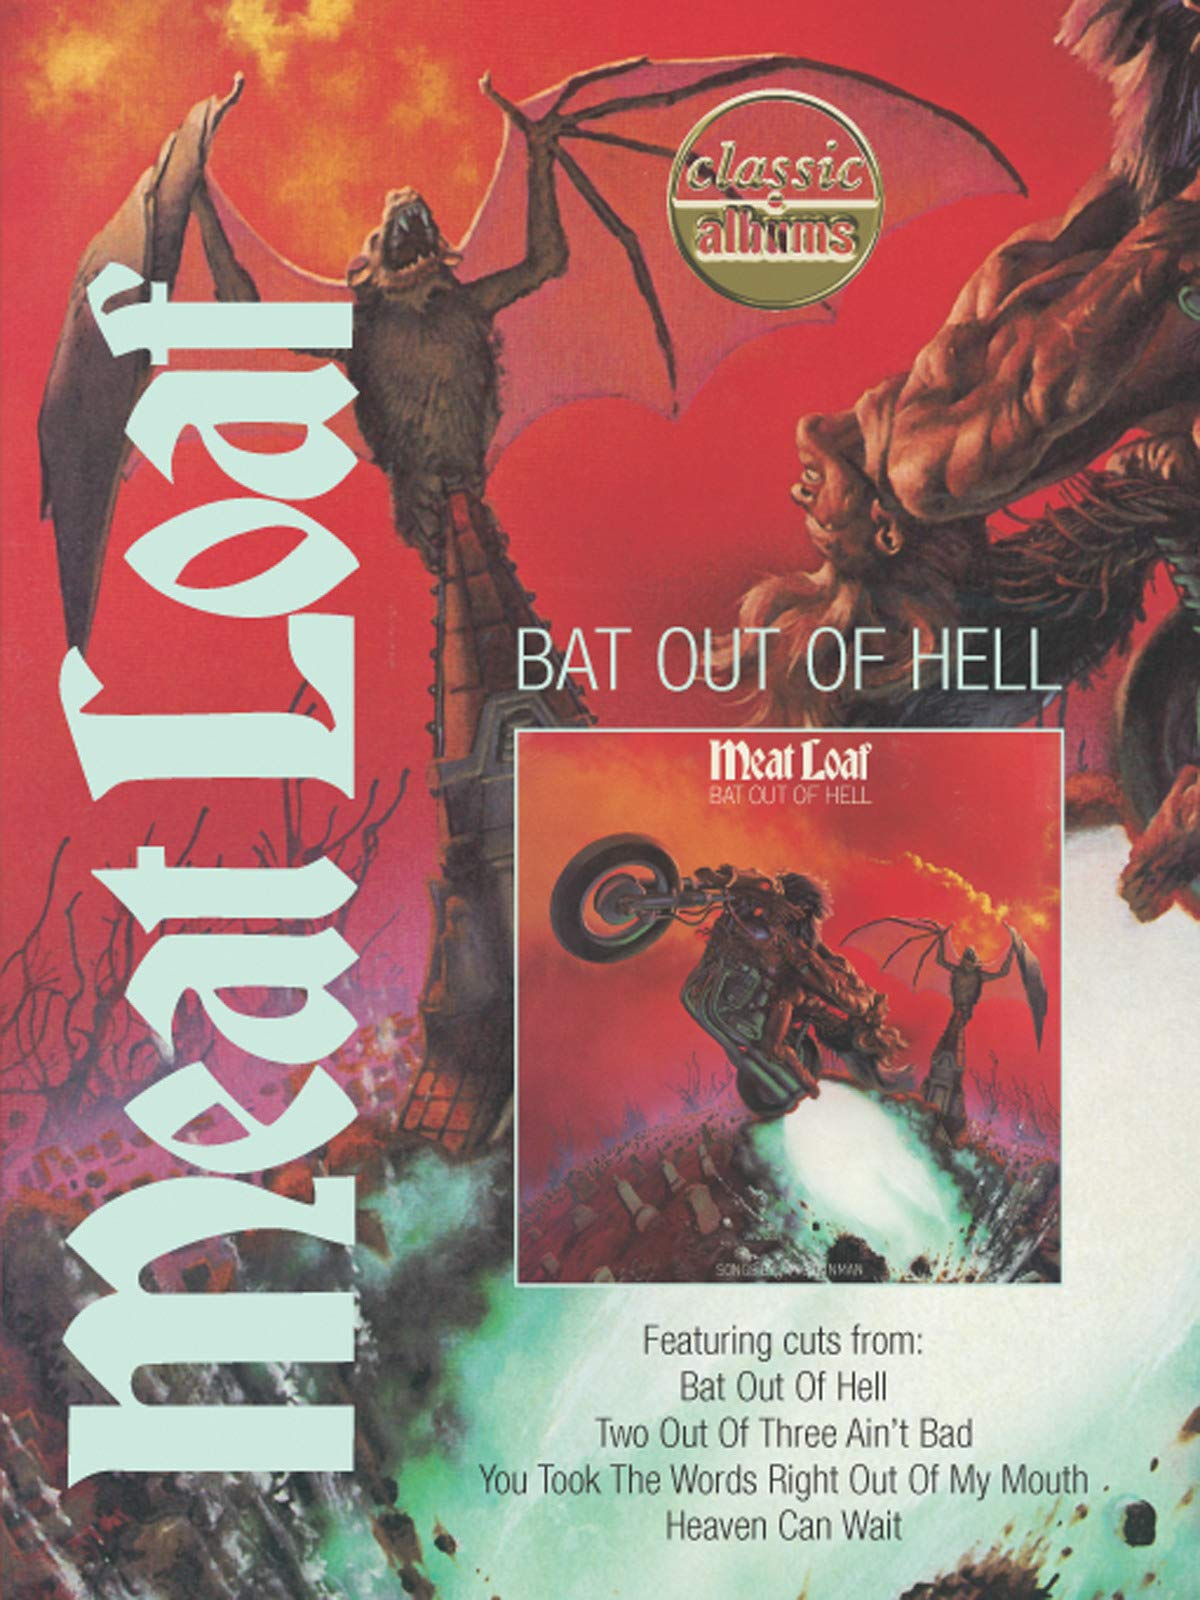 Meat Loaf - Bat Out Of Hell (Classic Album) on Amazon Prime Video UK